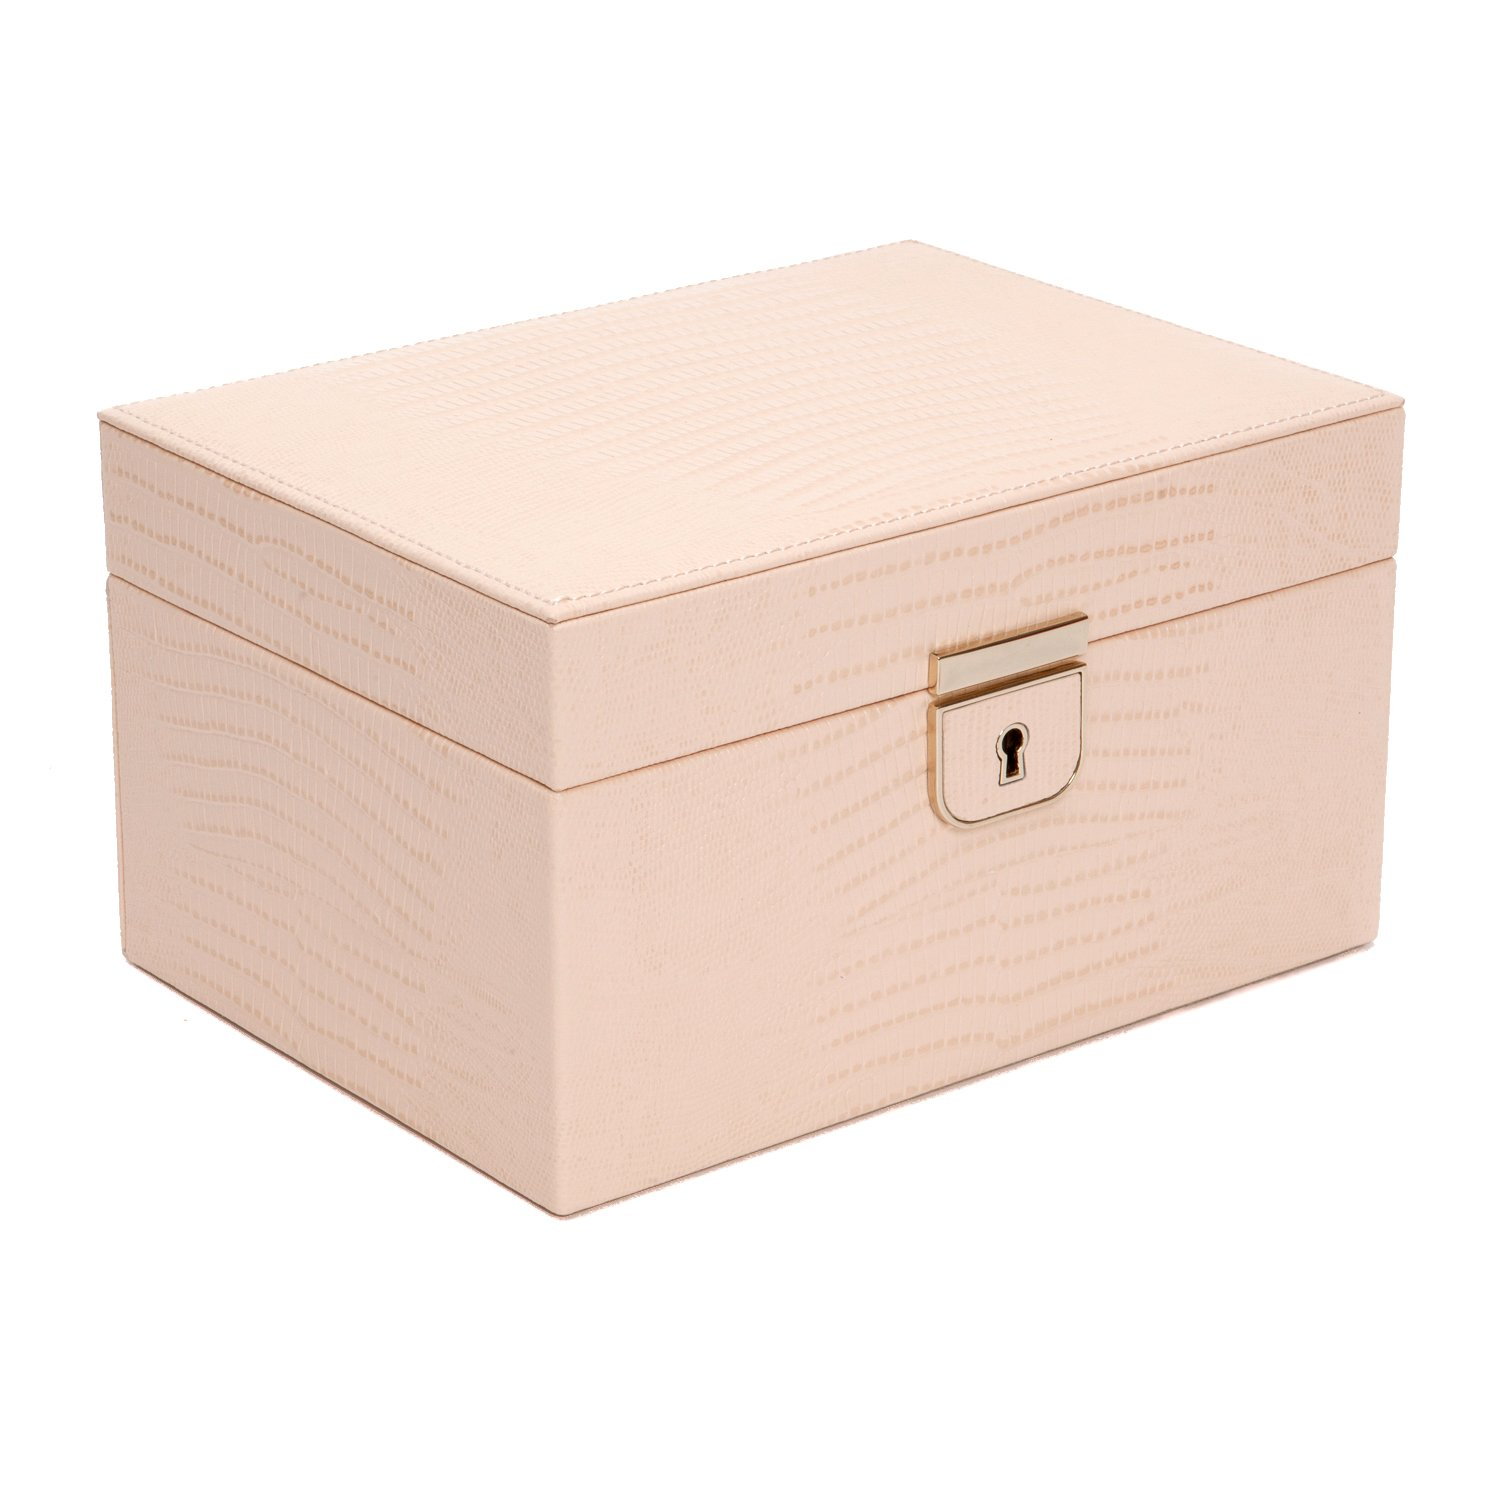 WOLF 213194 Palermo Small Jewelry Box